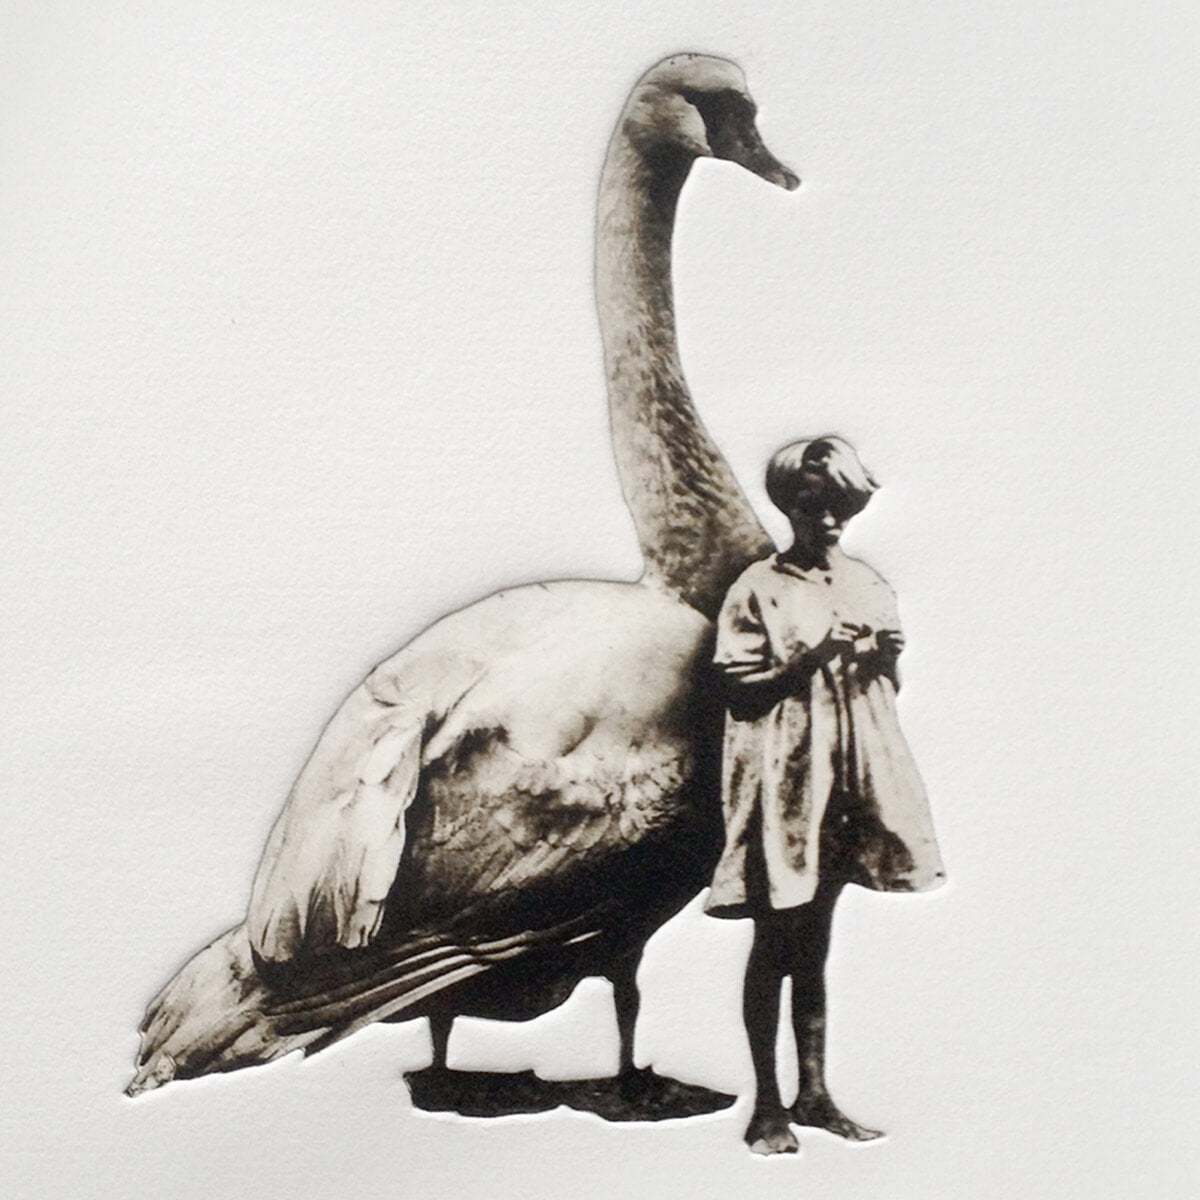 Girl and Swan No. 3